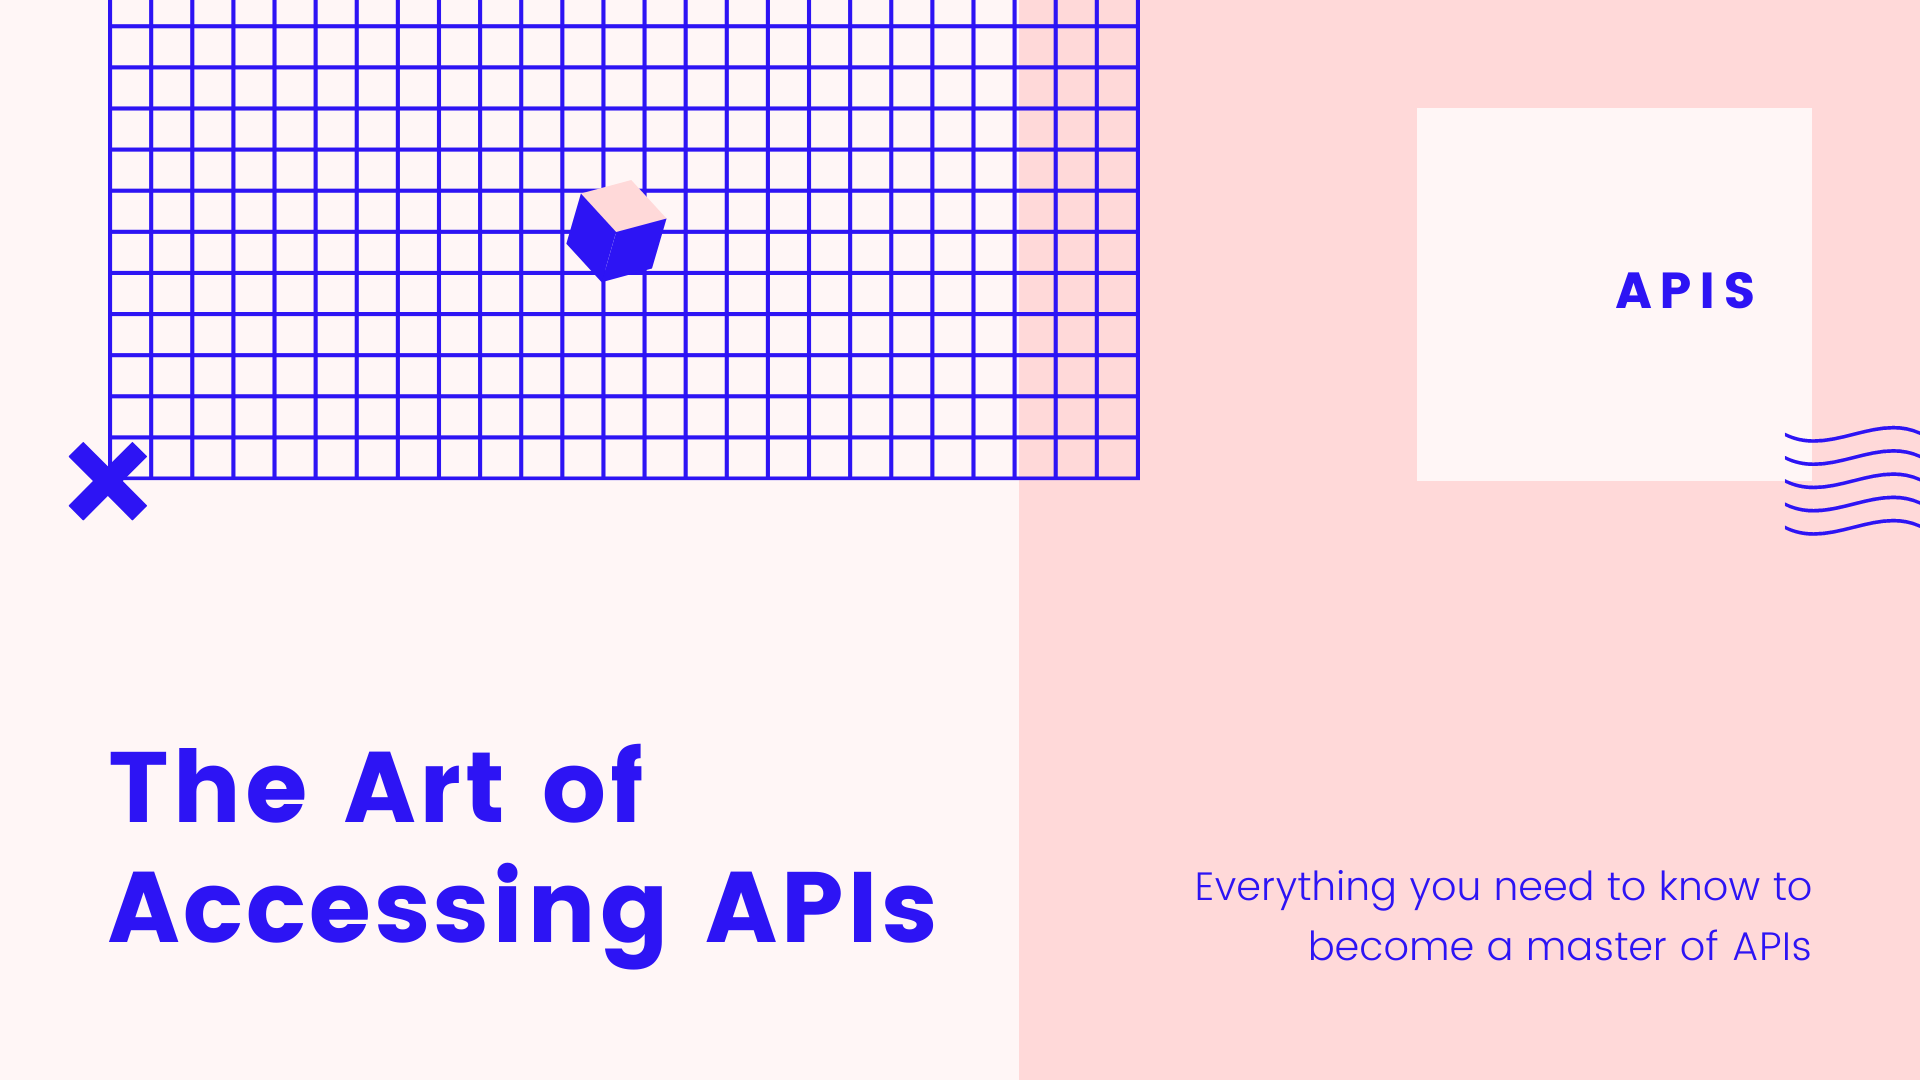 Art of accessing APIs - everything you need to know to become a master of APIs.